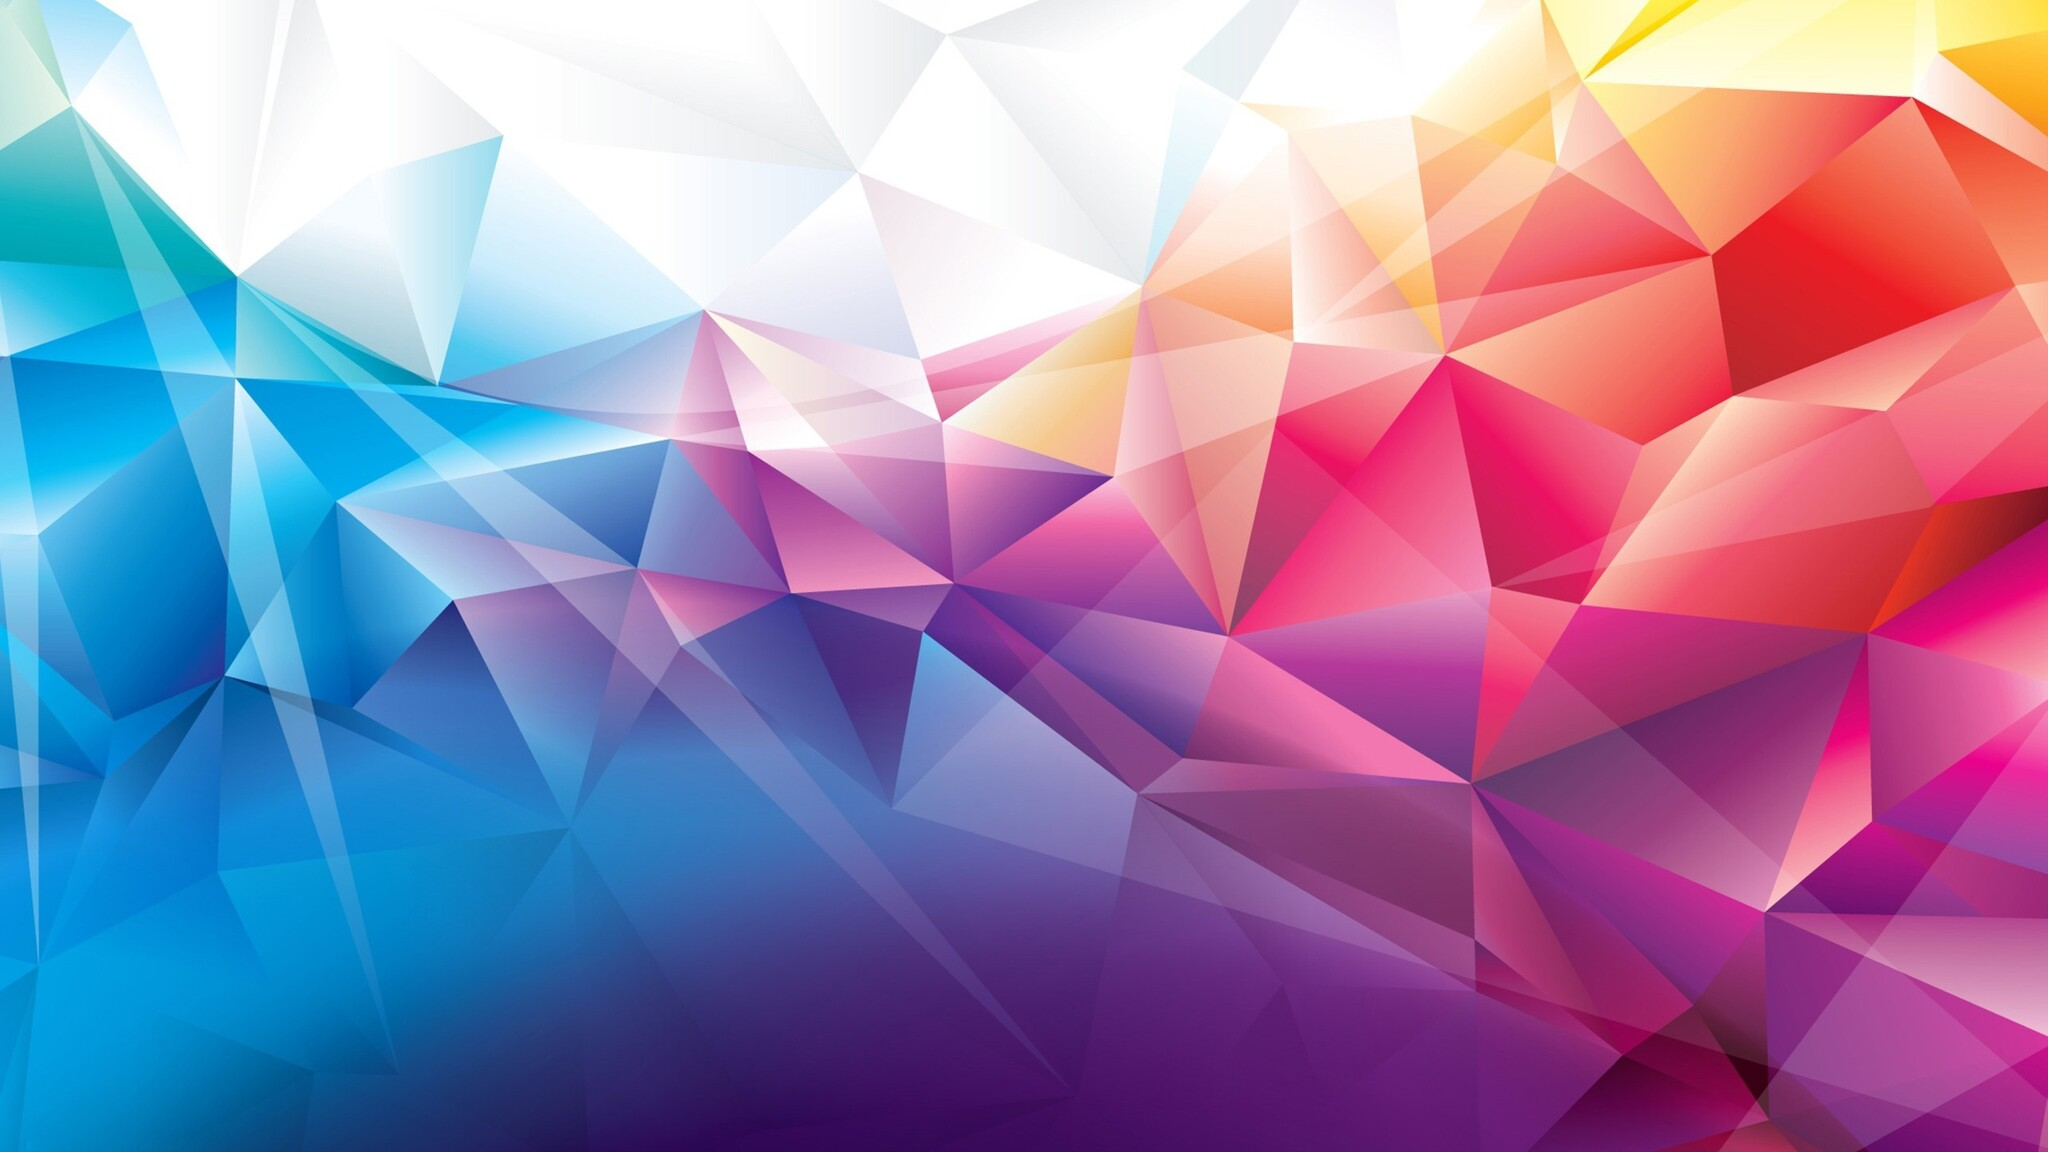 Purple Polygonal Abstract Background: 2048x1152 Colorful Polygons 2048x1152 Resolution HD 4k